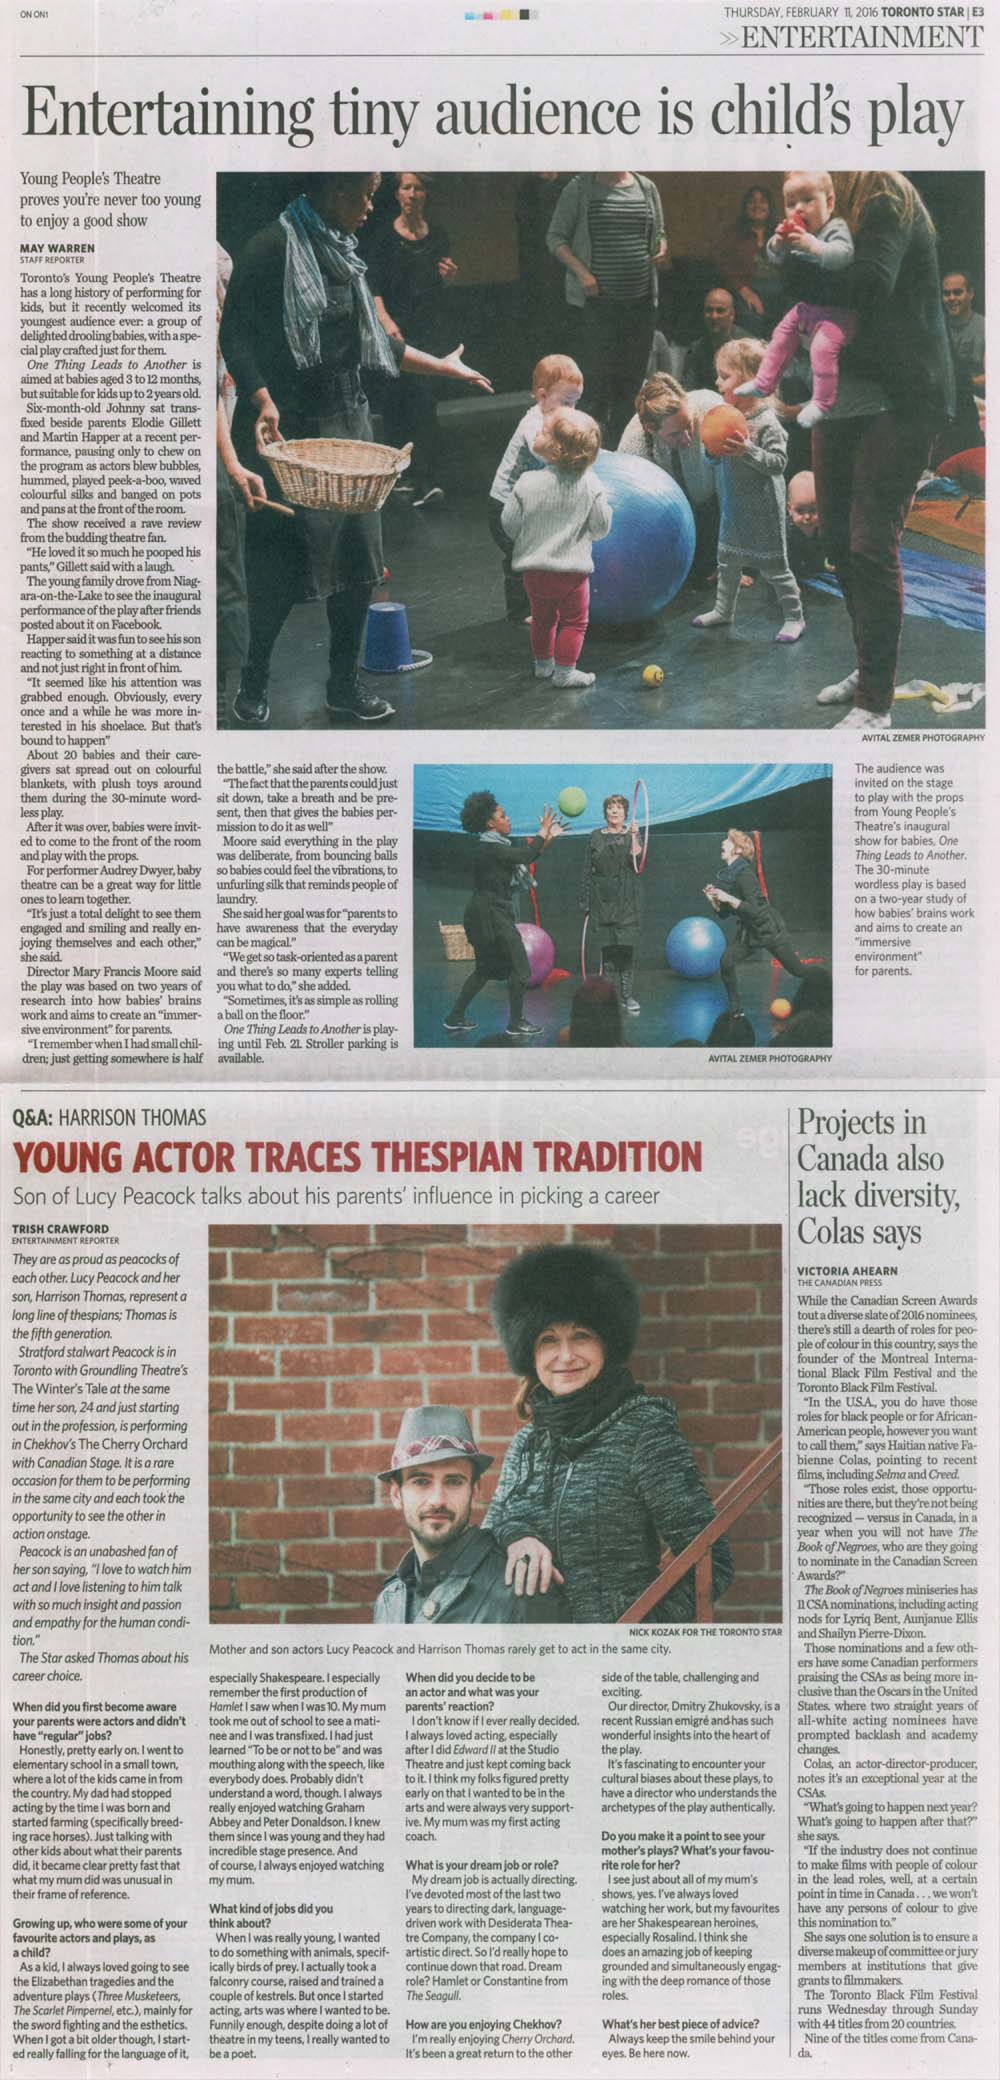 16.02.11 - Toronto Star - THE WINTER'S TALE 2.jpg